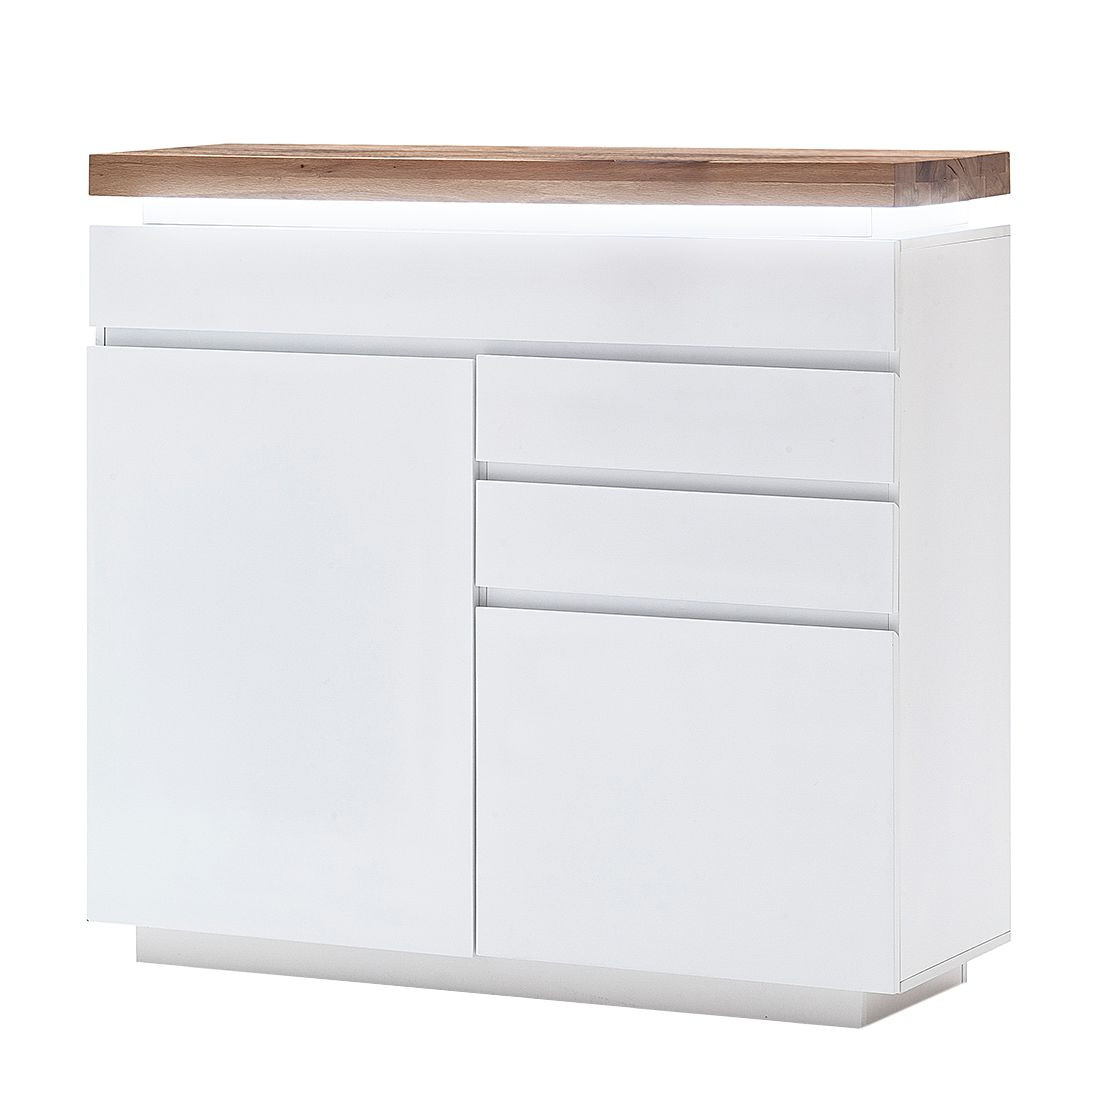 Commode Roble I (éclairage inclus)